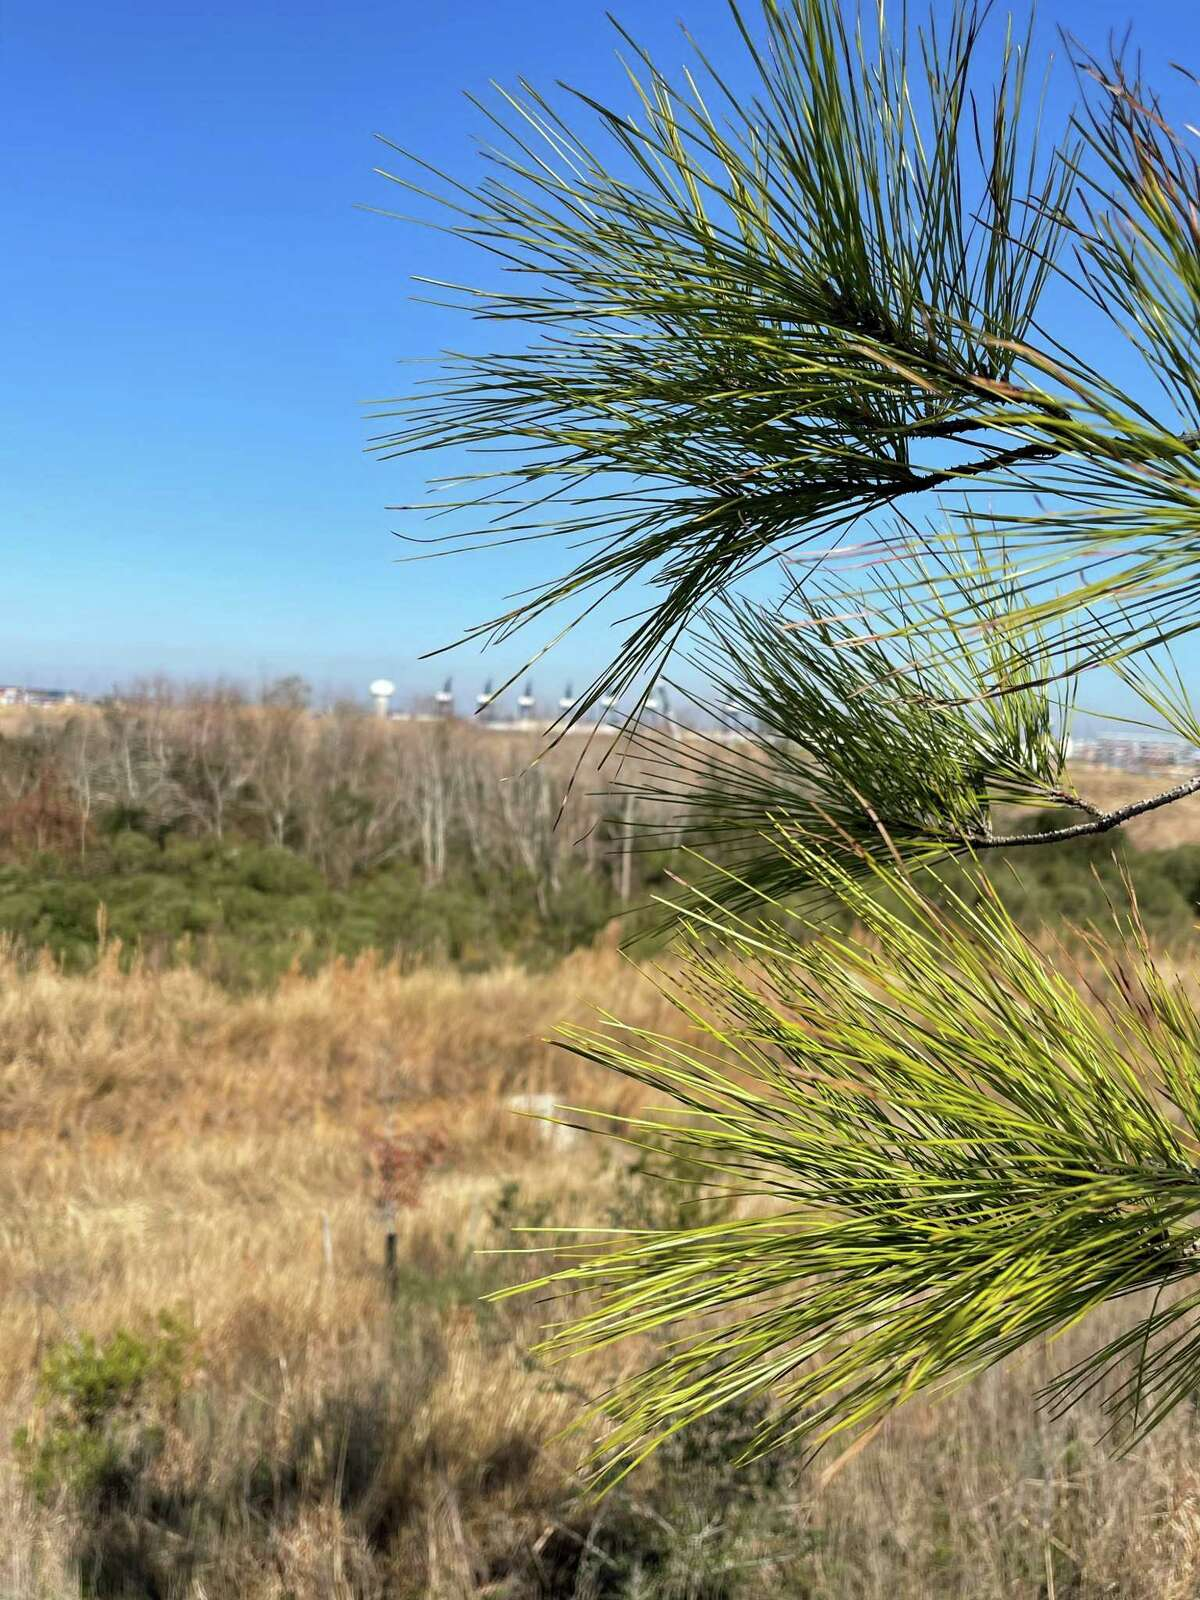 A view through a young loblolly pine, one of the designated 'super trees' planted by Houston Wilderness and its partners along the three-mile long, 30-foot high Bayport Berm, looking toward Port Houston's Bayport Container Terminal, on Wednesday, Jan. 13, 2021.